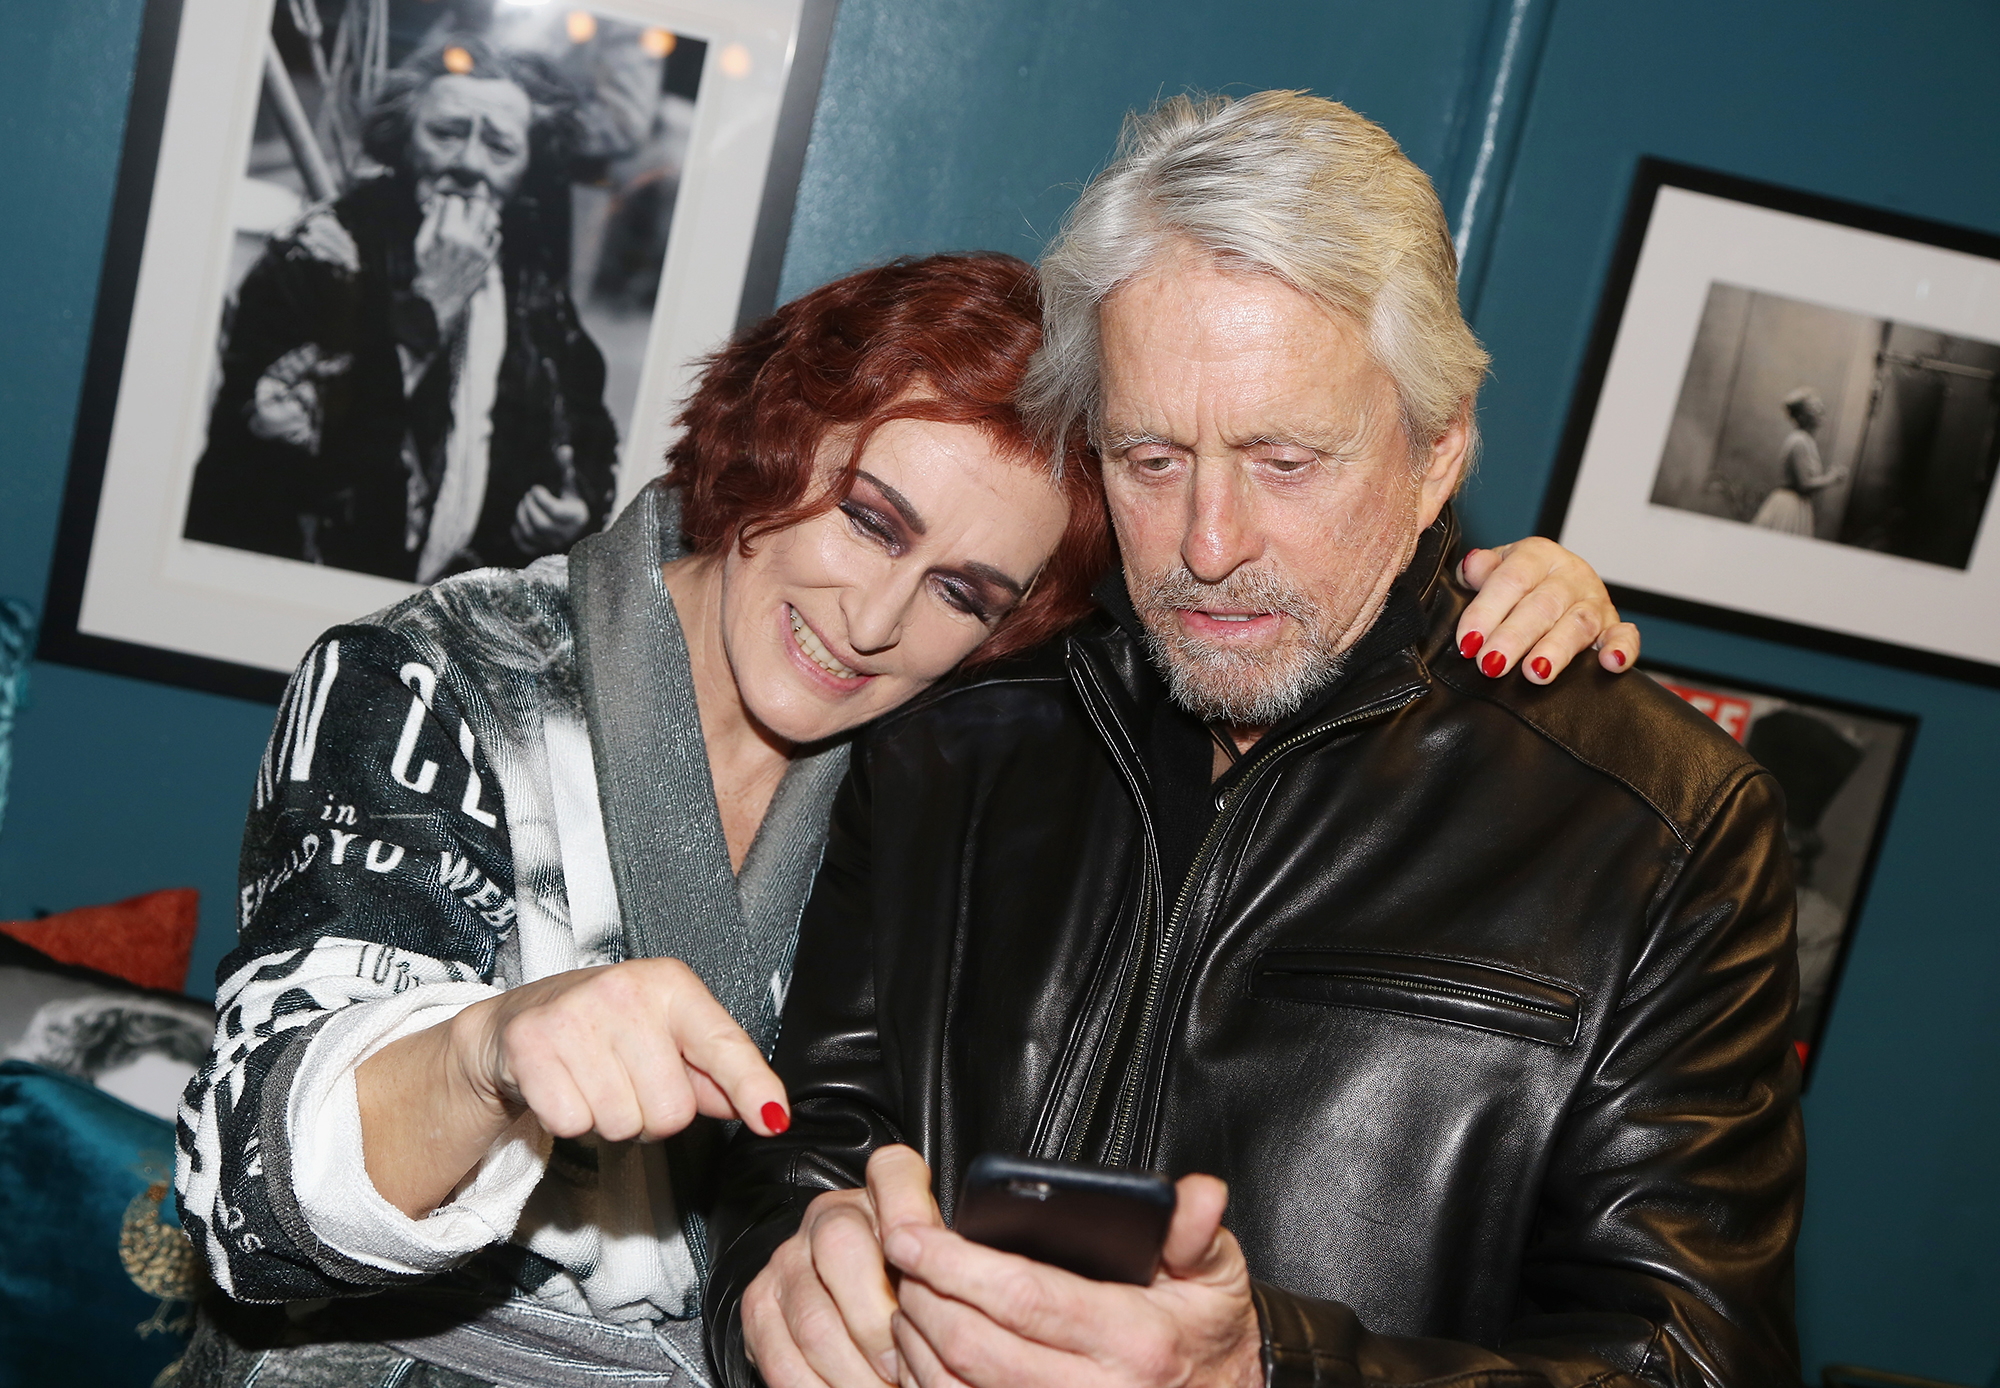 """NEW YORK, NY - FEBRUARY 22: (EXCLUSIVE COVERAGE) Glenn Close and Michael Douglas (a """"Fatal Attraction film reunion) pose backstage at the hit musical """"Sunset Boulevard"""" on Broadway at The Palace Theater on February 22, 2017 in New York City. (Photo by Bruce Glikas/Bruce Glikas/FilmMagic)"""